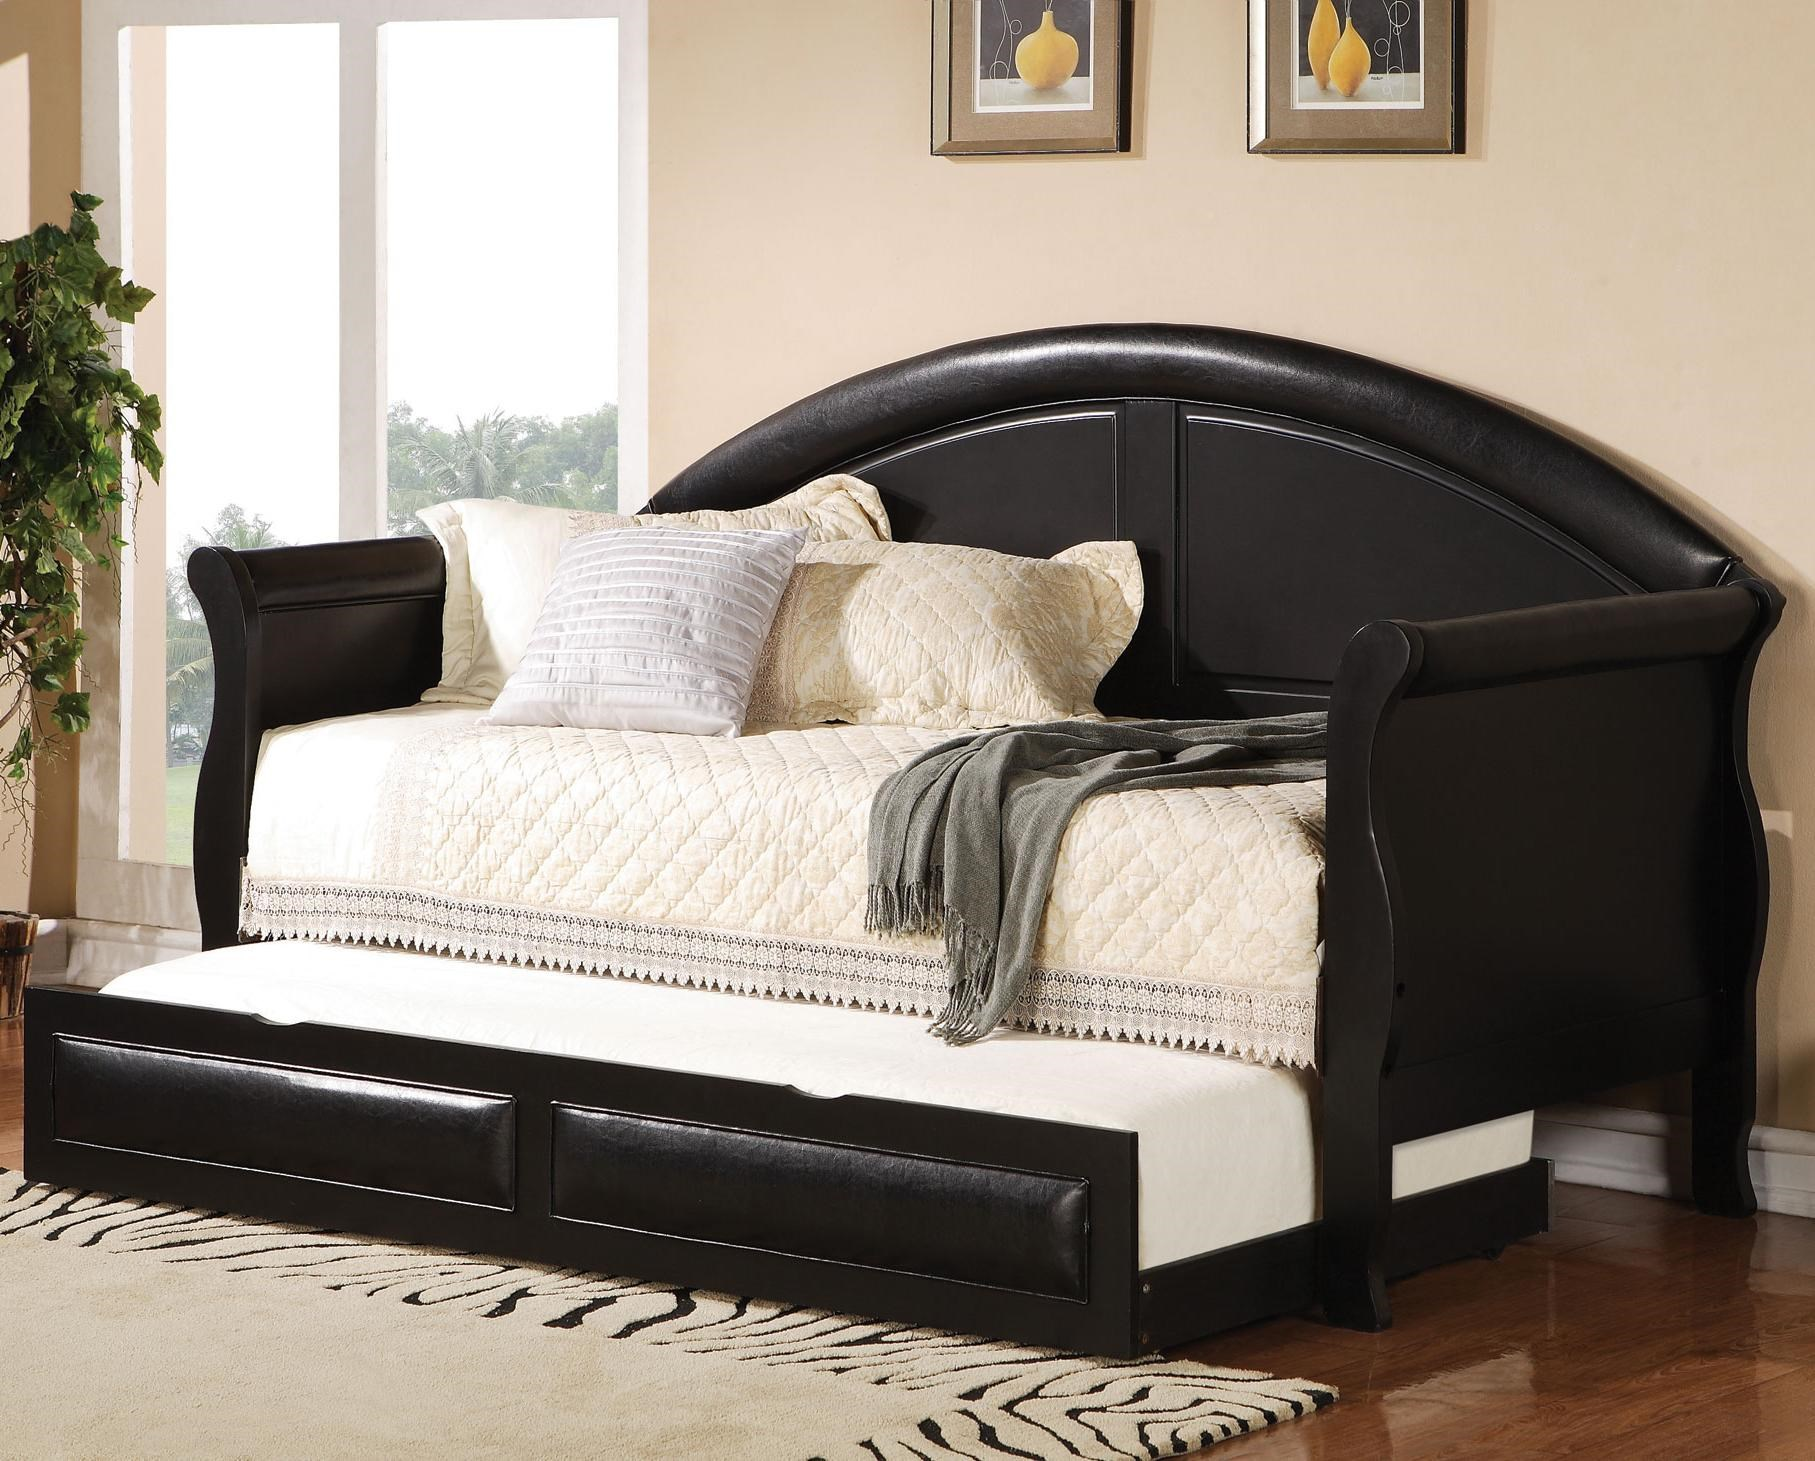 Exceptionnel Coaster Daybeds By Coaster Classic Daybed